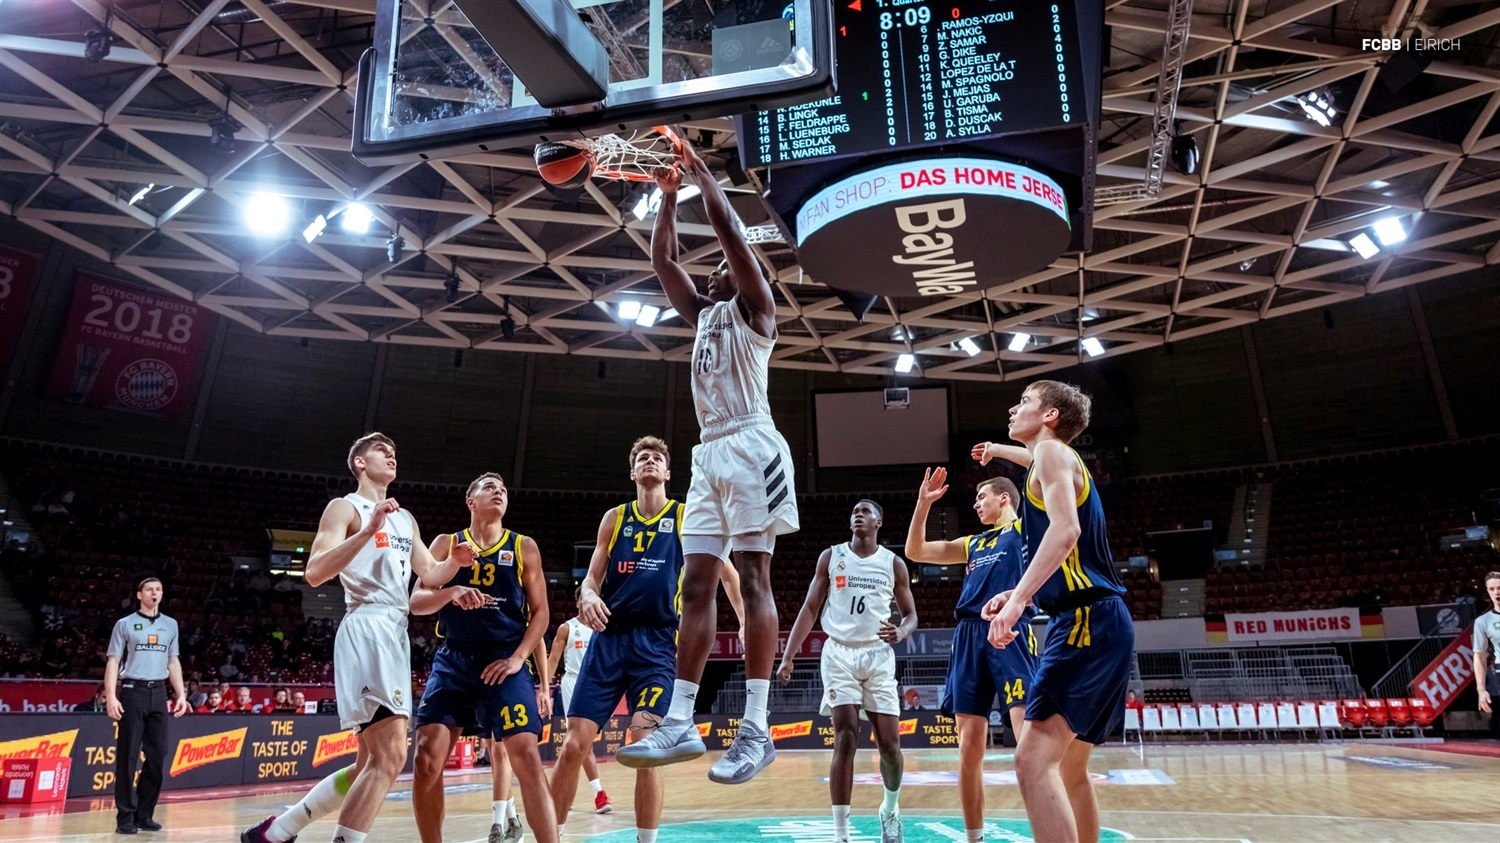 Golden Dike - U18 Real Madrid - ANGT Munich 2019 (photo FCBB - Eirich) JT18